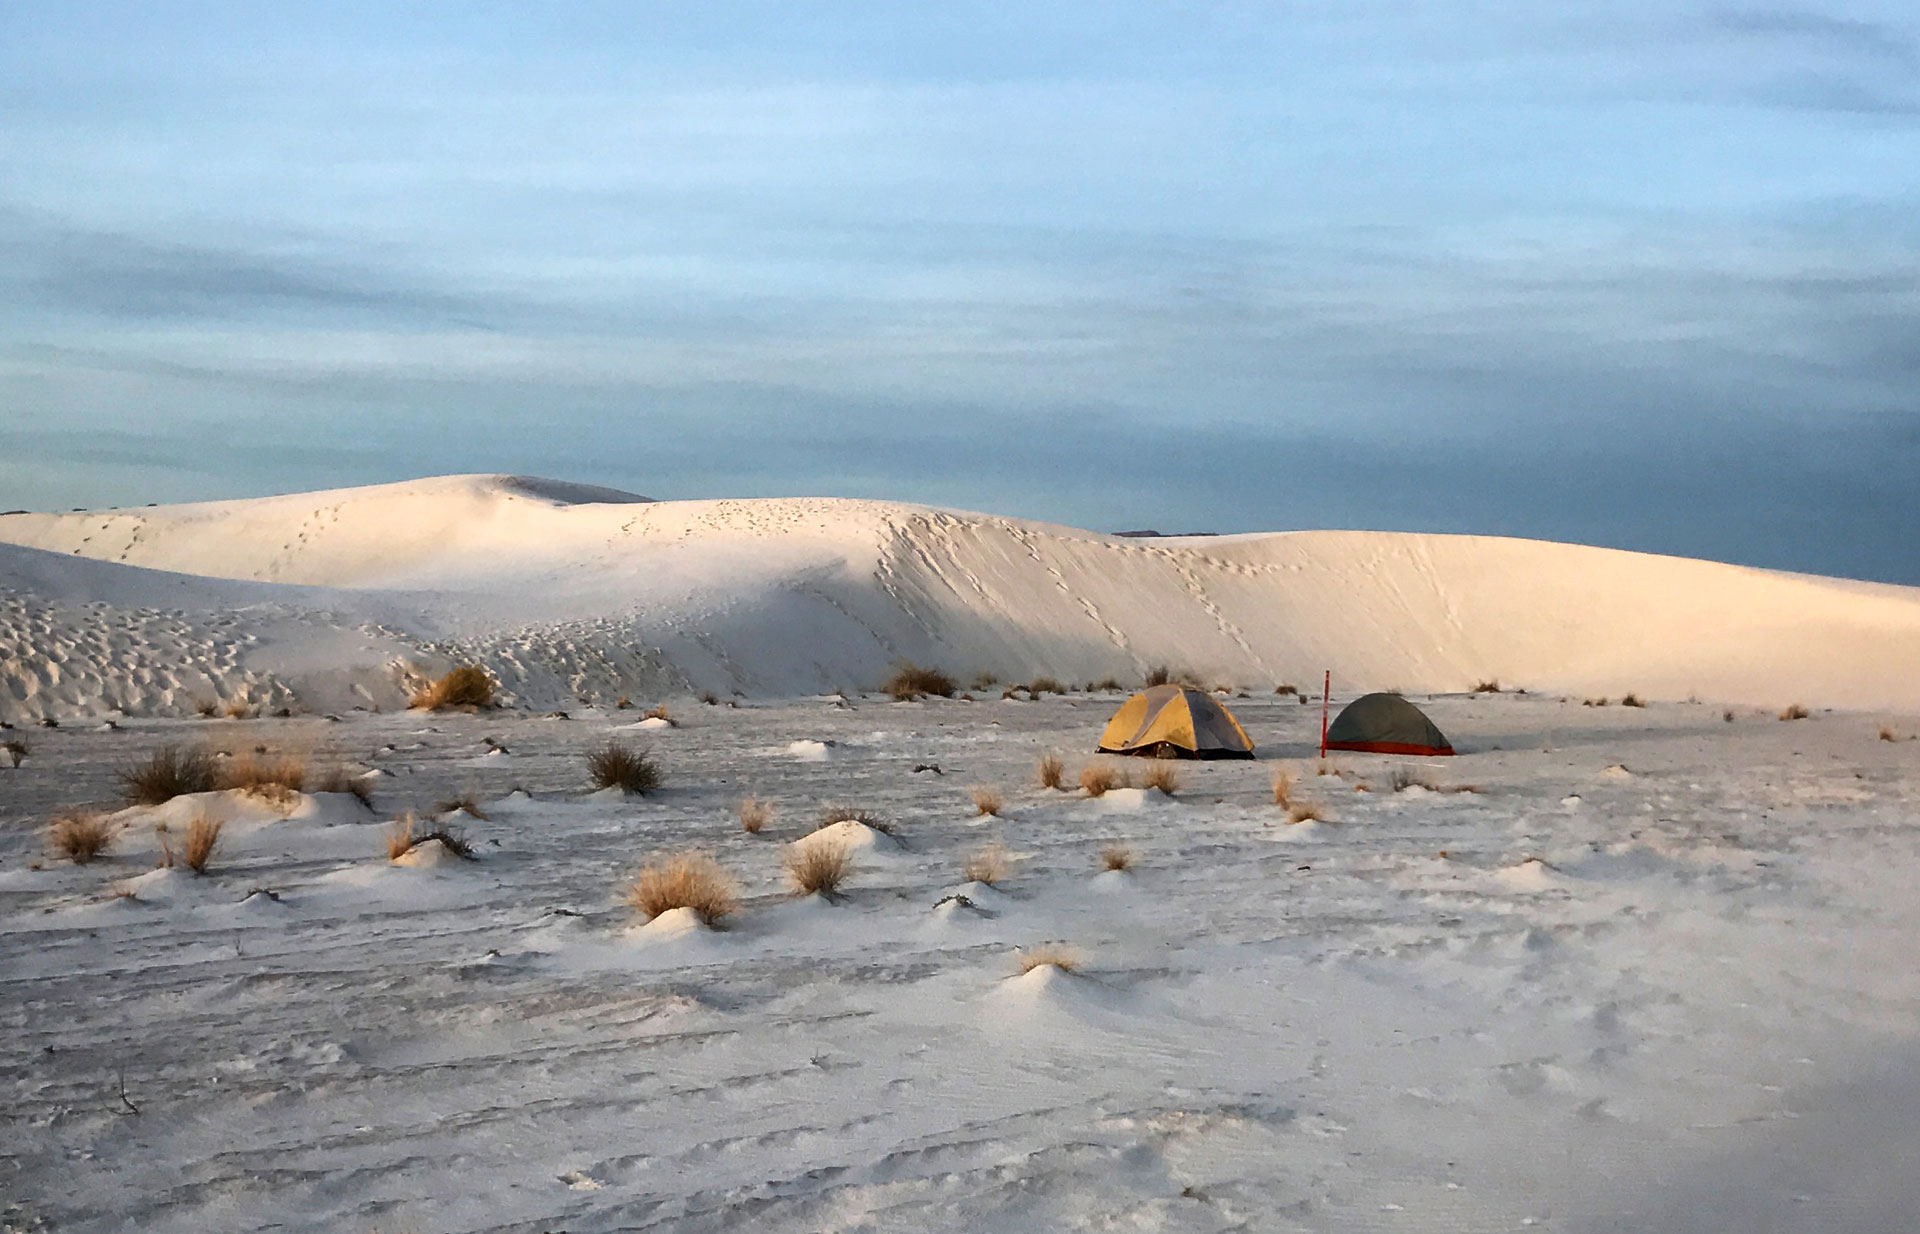 Photograph: Two tents are seen at sunrise in the middle of the sand dunes of White Sands National Monument.